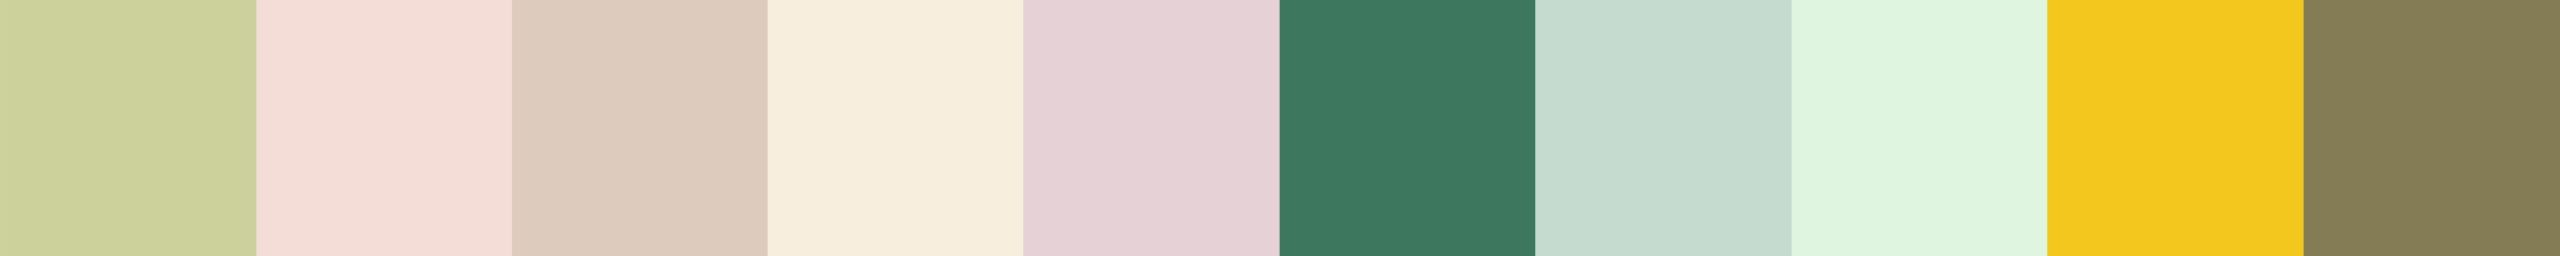 592 Neria Color Palette